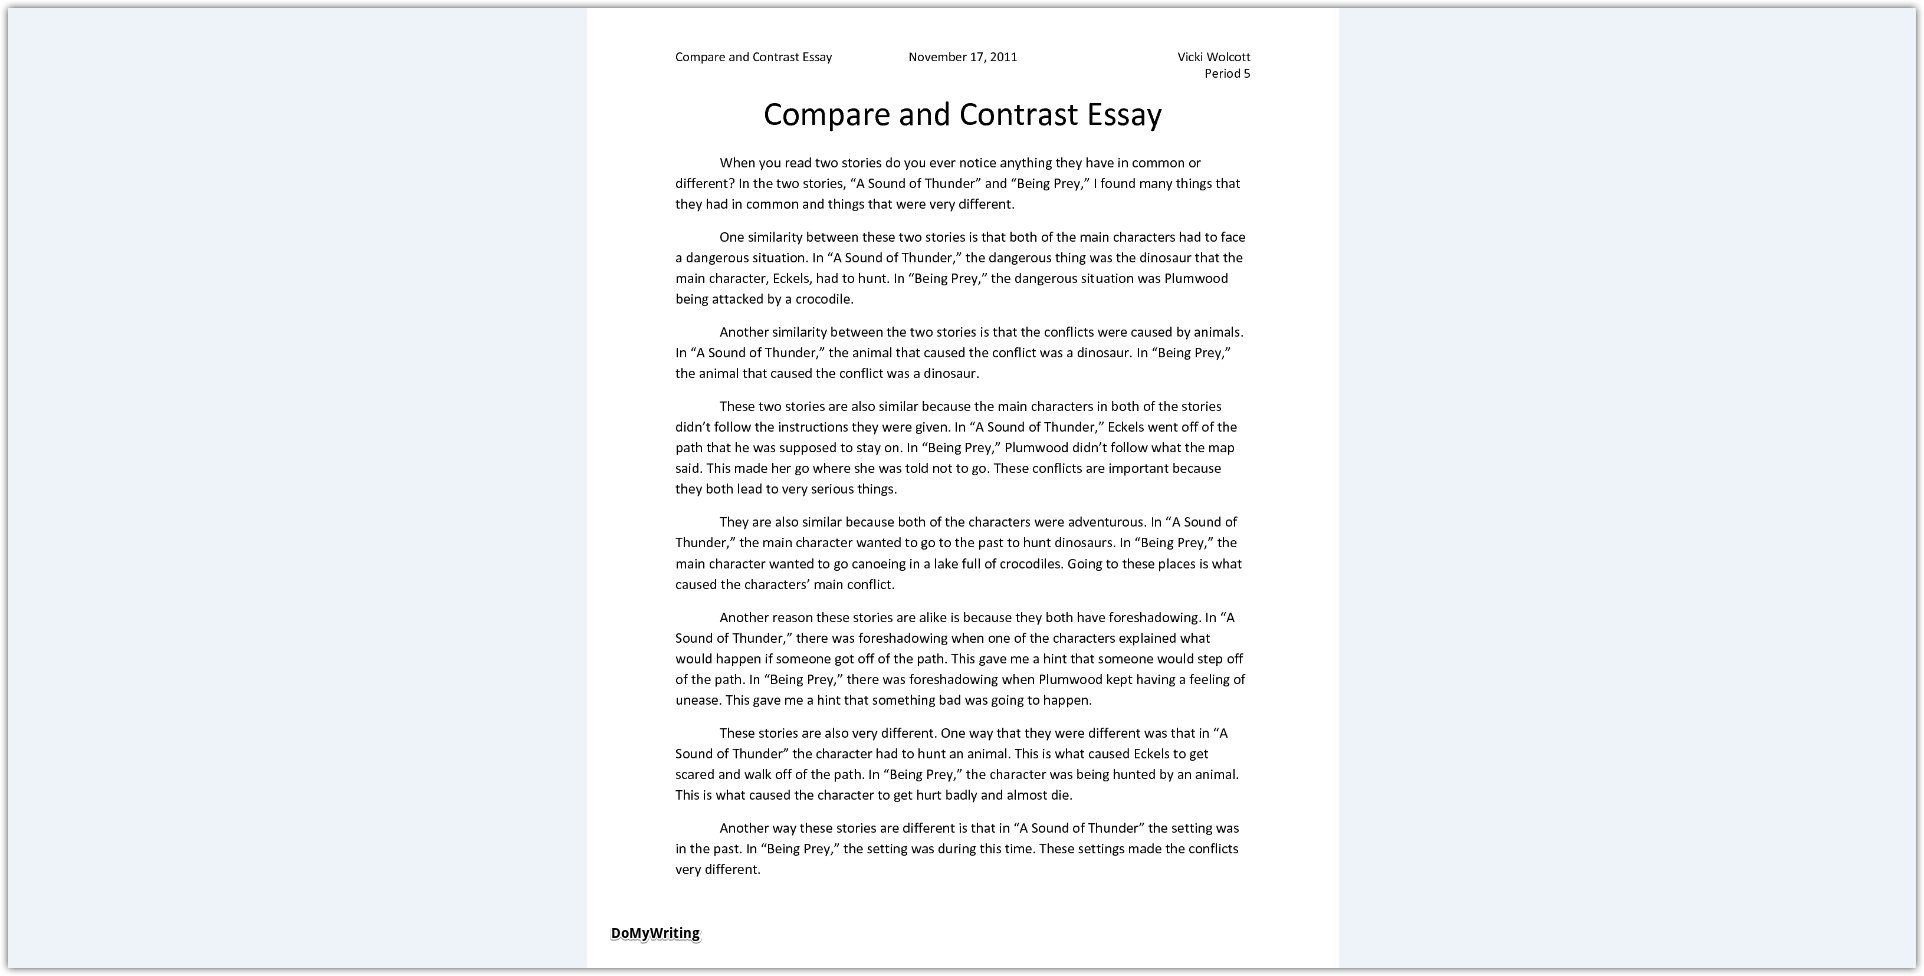 Thesis Essay Examples  Argumentative Essay Thesis Example also English Essay Internet Guided Writing A Winning Compare And Contrast Essay Good English Essays Examples